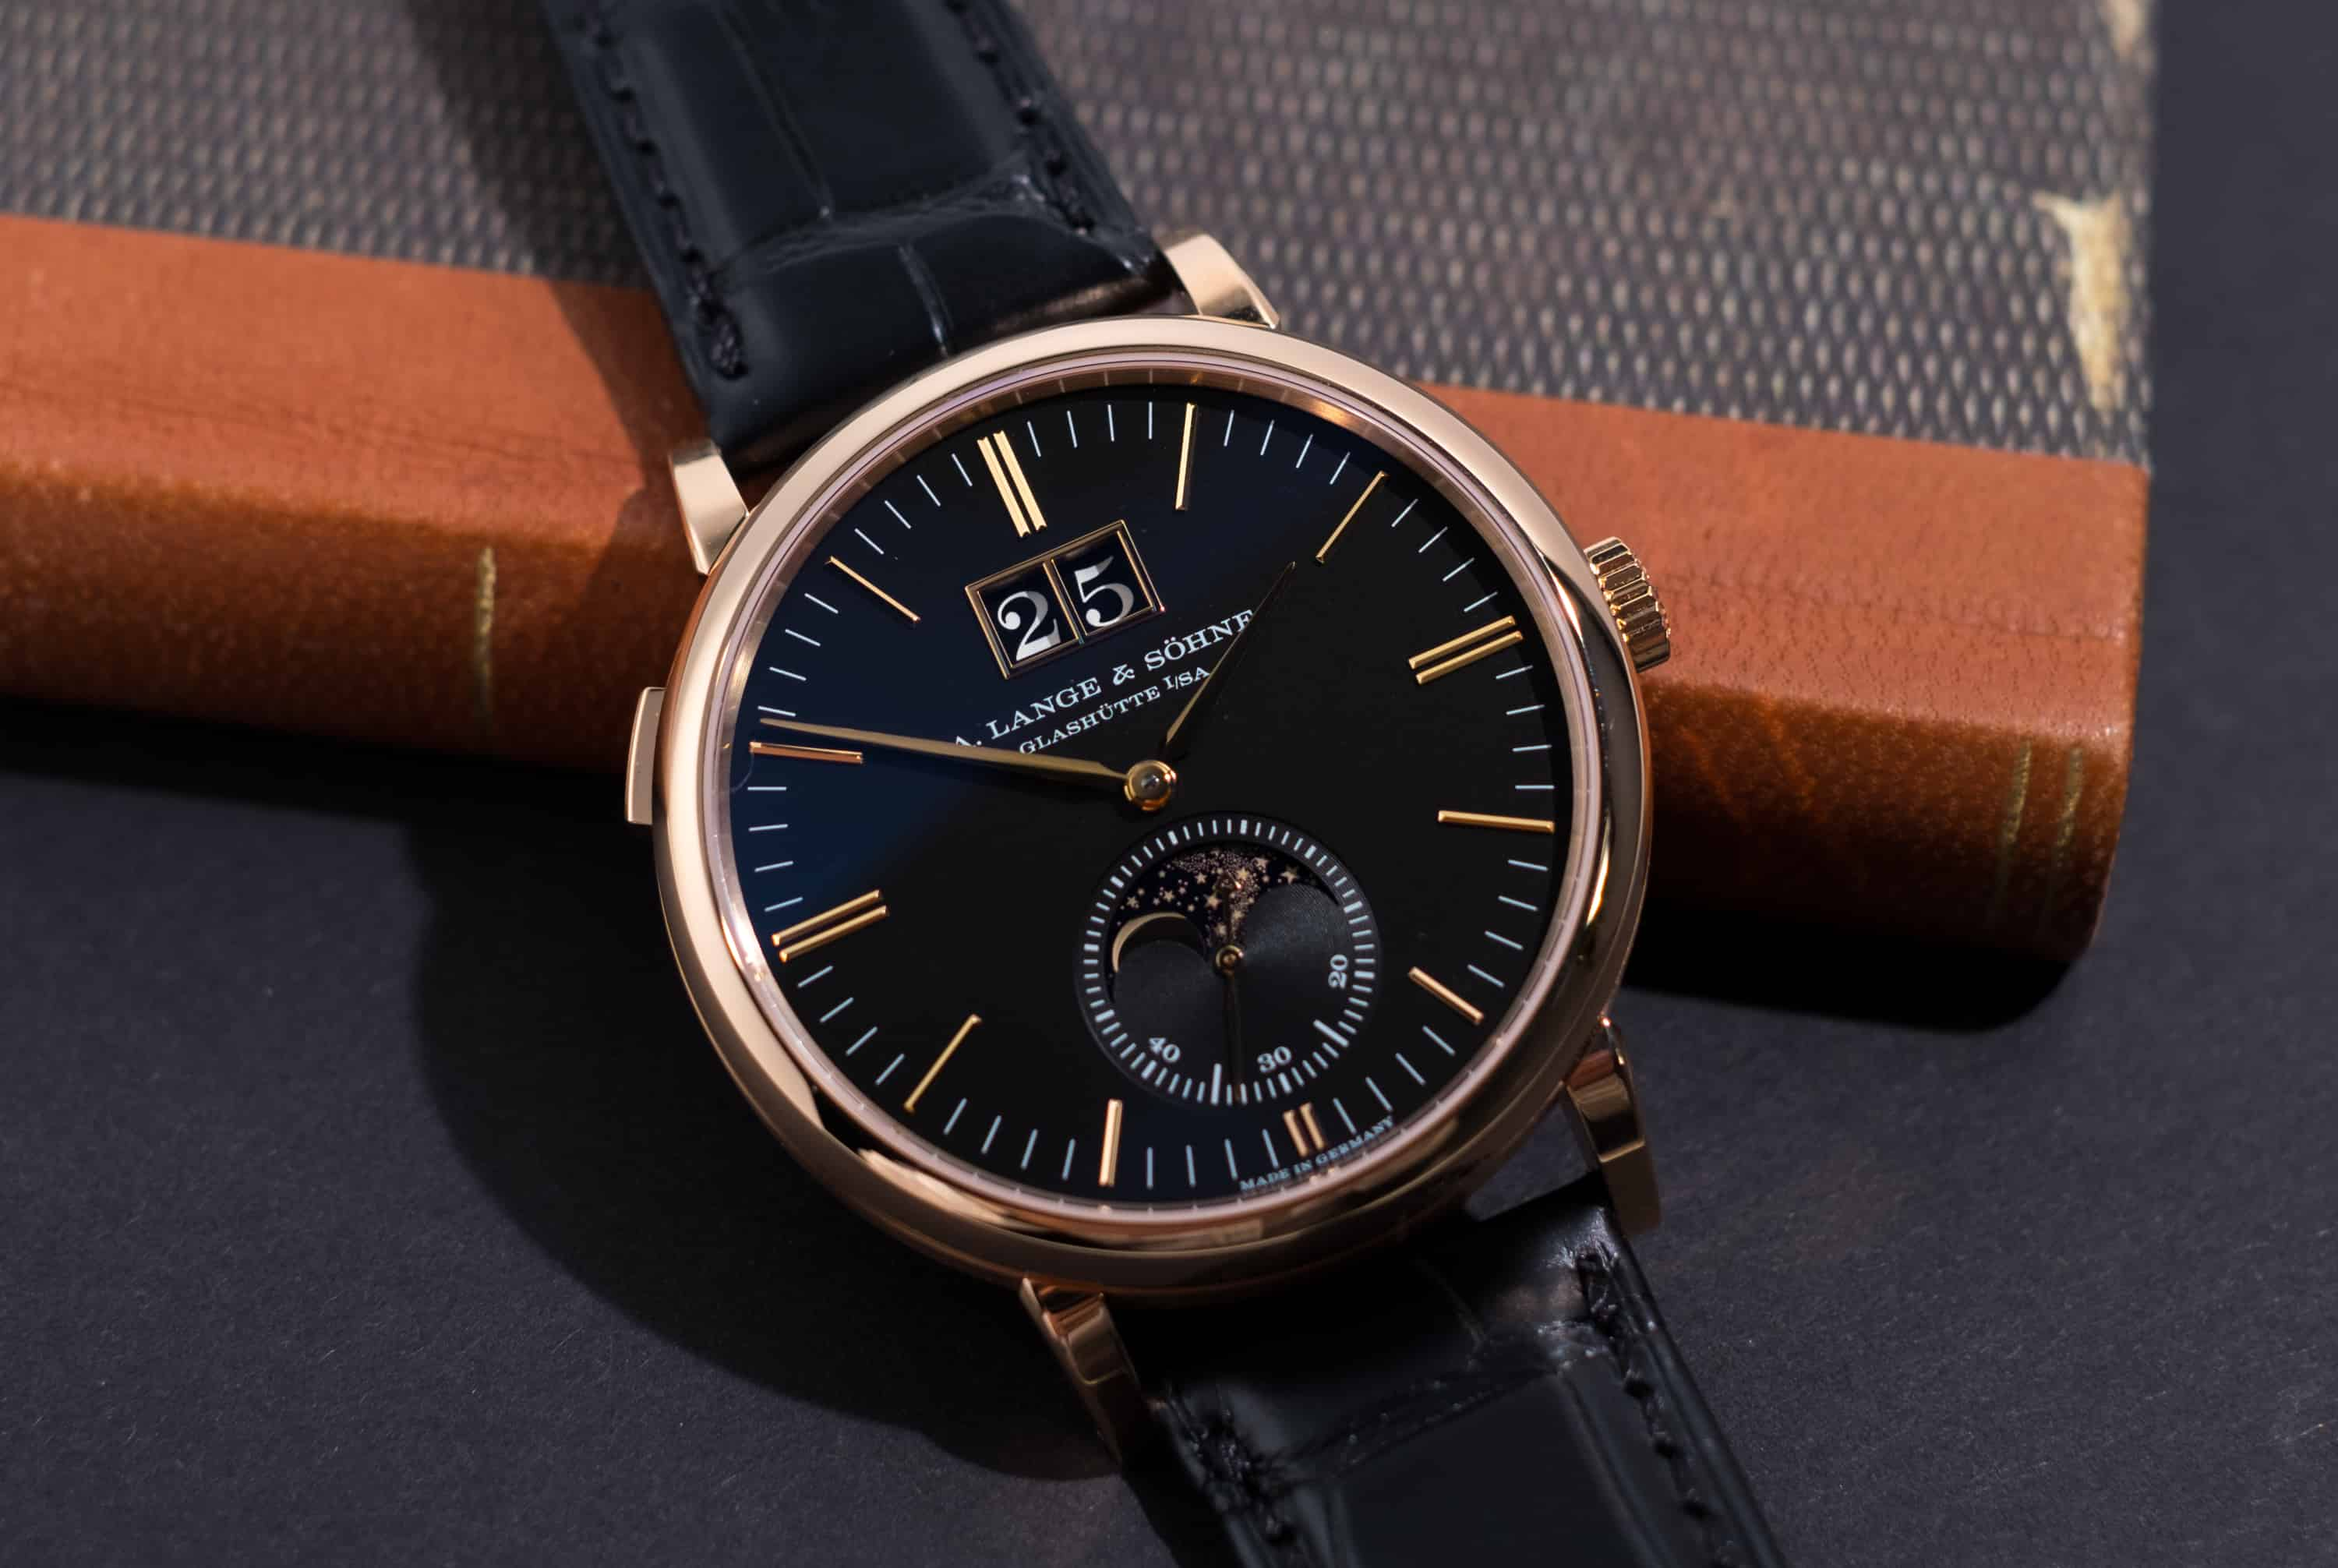 alangesohne saxonia moon phase sihh 2018